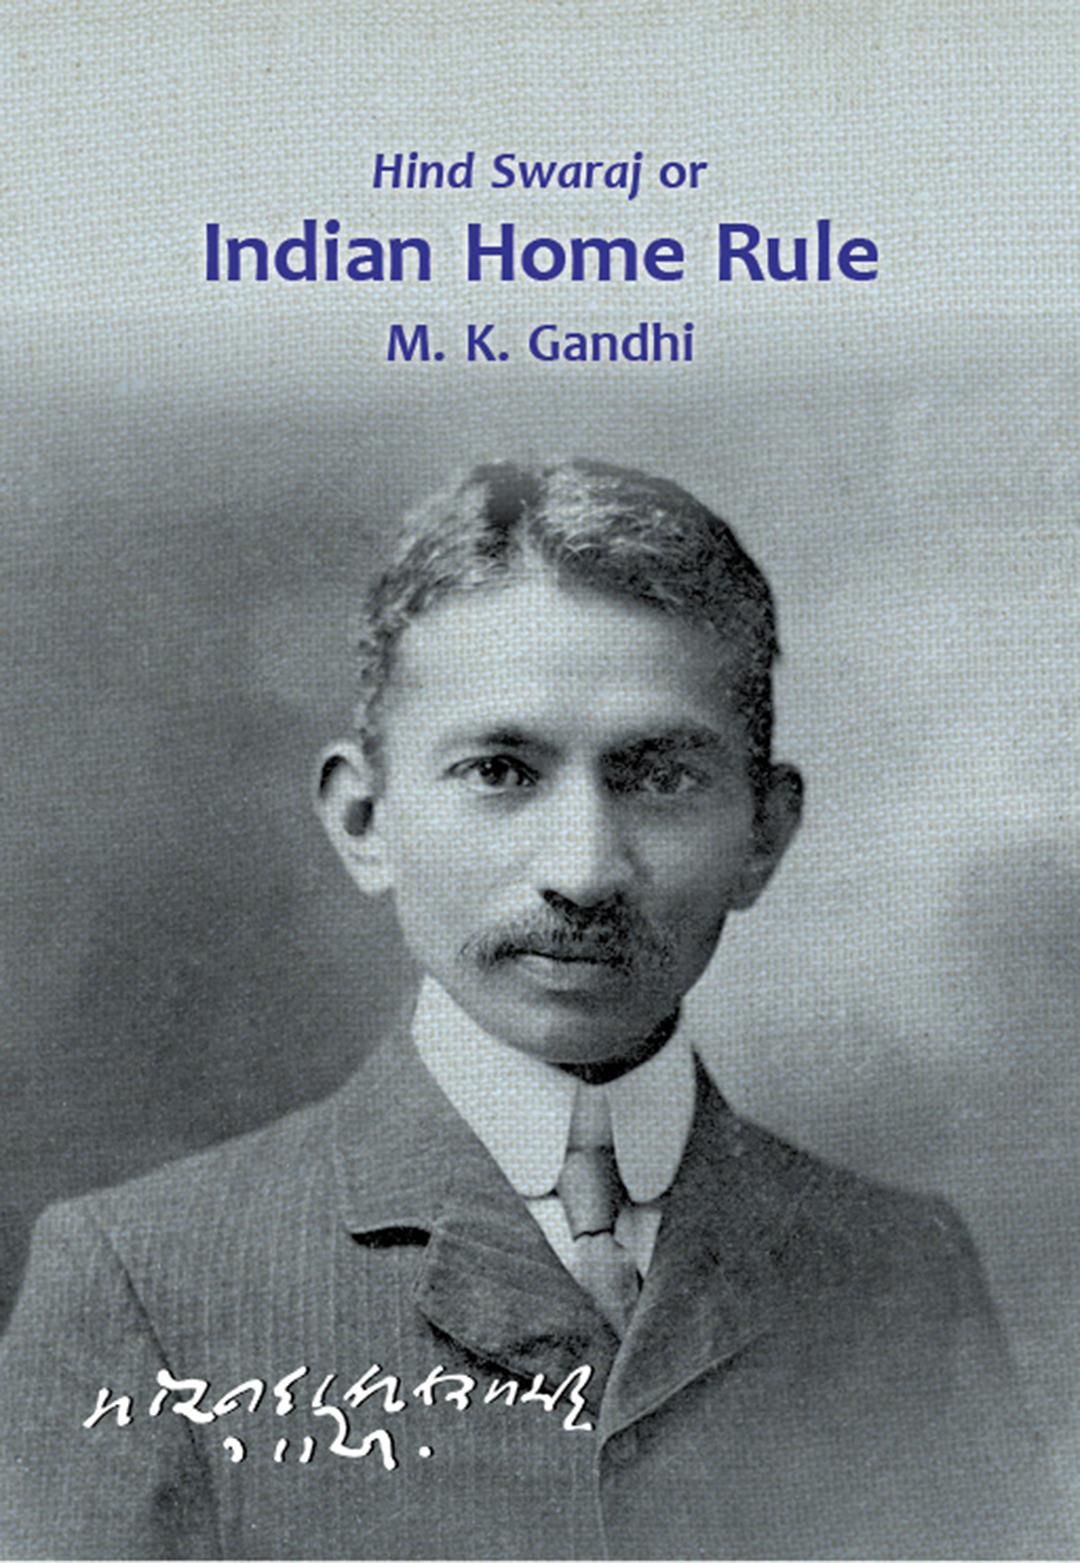 Hind Swaraj or Indian Home Rule : Download Complete Ebook free